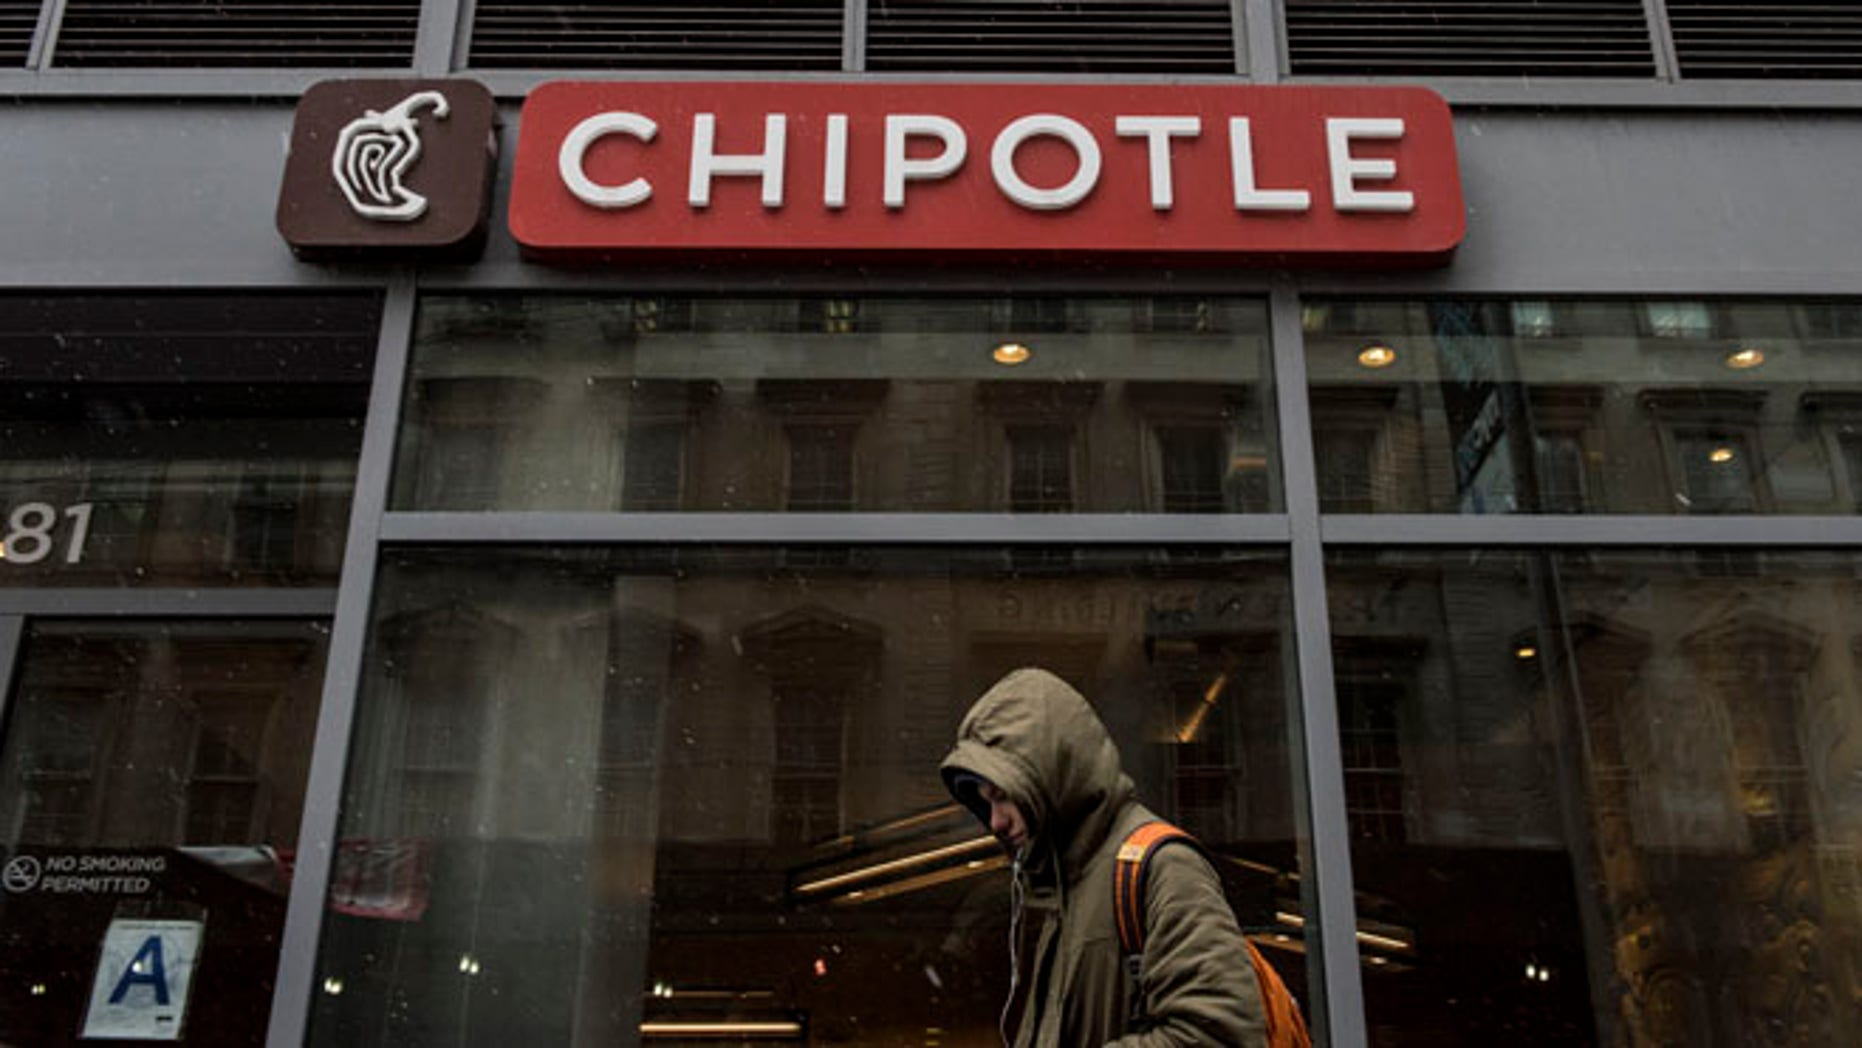 NEW YORK, NEW YORK -- FEBRUARY 8:  A man walks past an empty Chipotle restaurant on Broadway in Lower Manhattan on February 8, 2016 in New York City. The Mexican food chain is closing stores for lunch nationwide for a meeting on food safety following a number of E. coli outbreaks. (Photo by Andrew Renneisen/Getty Images)